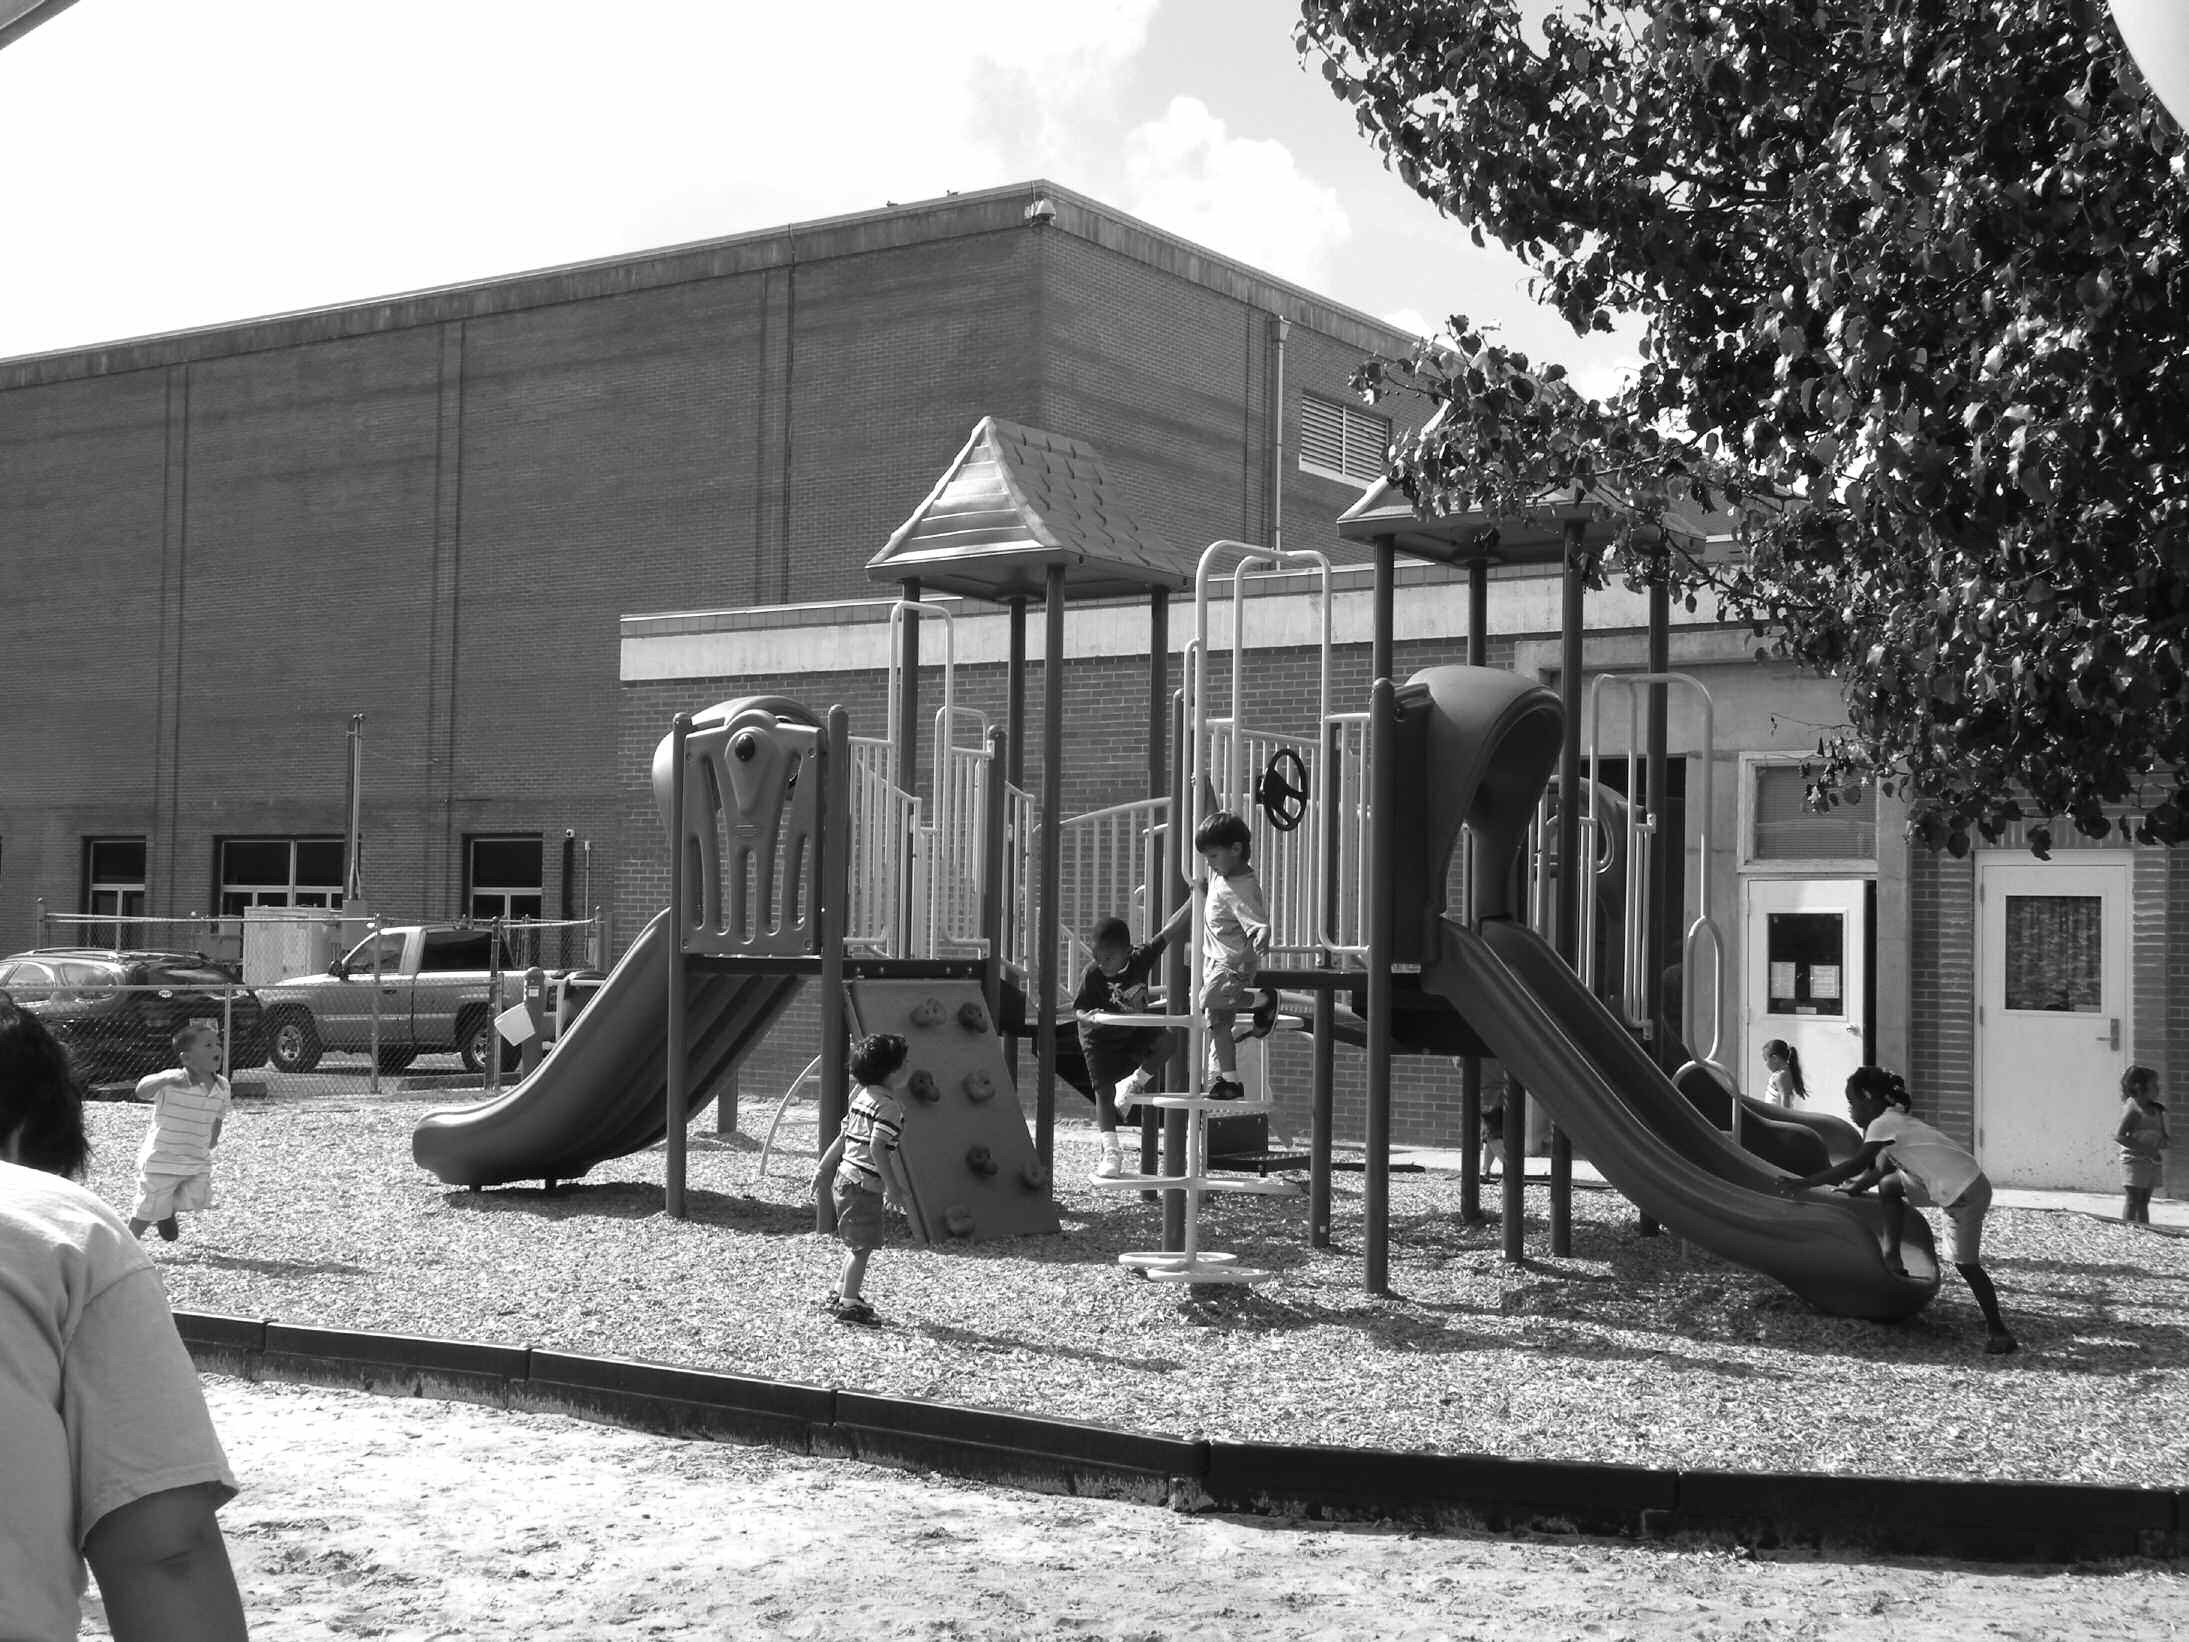 Children play on the new playground located at the Habersham St. YMCA